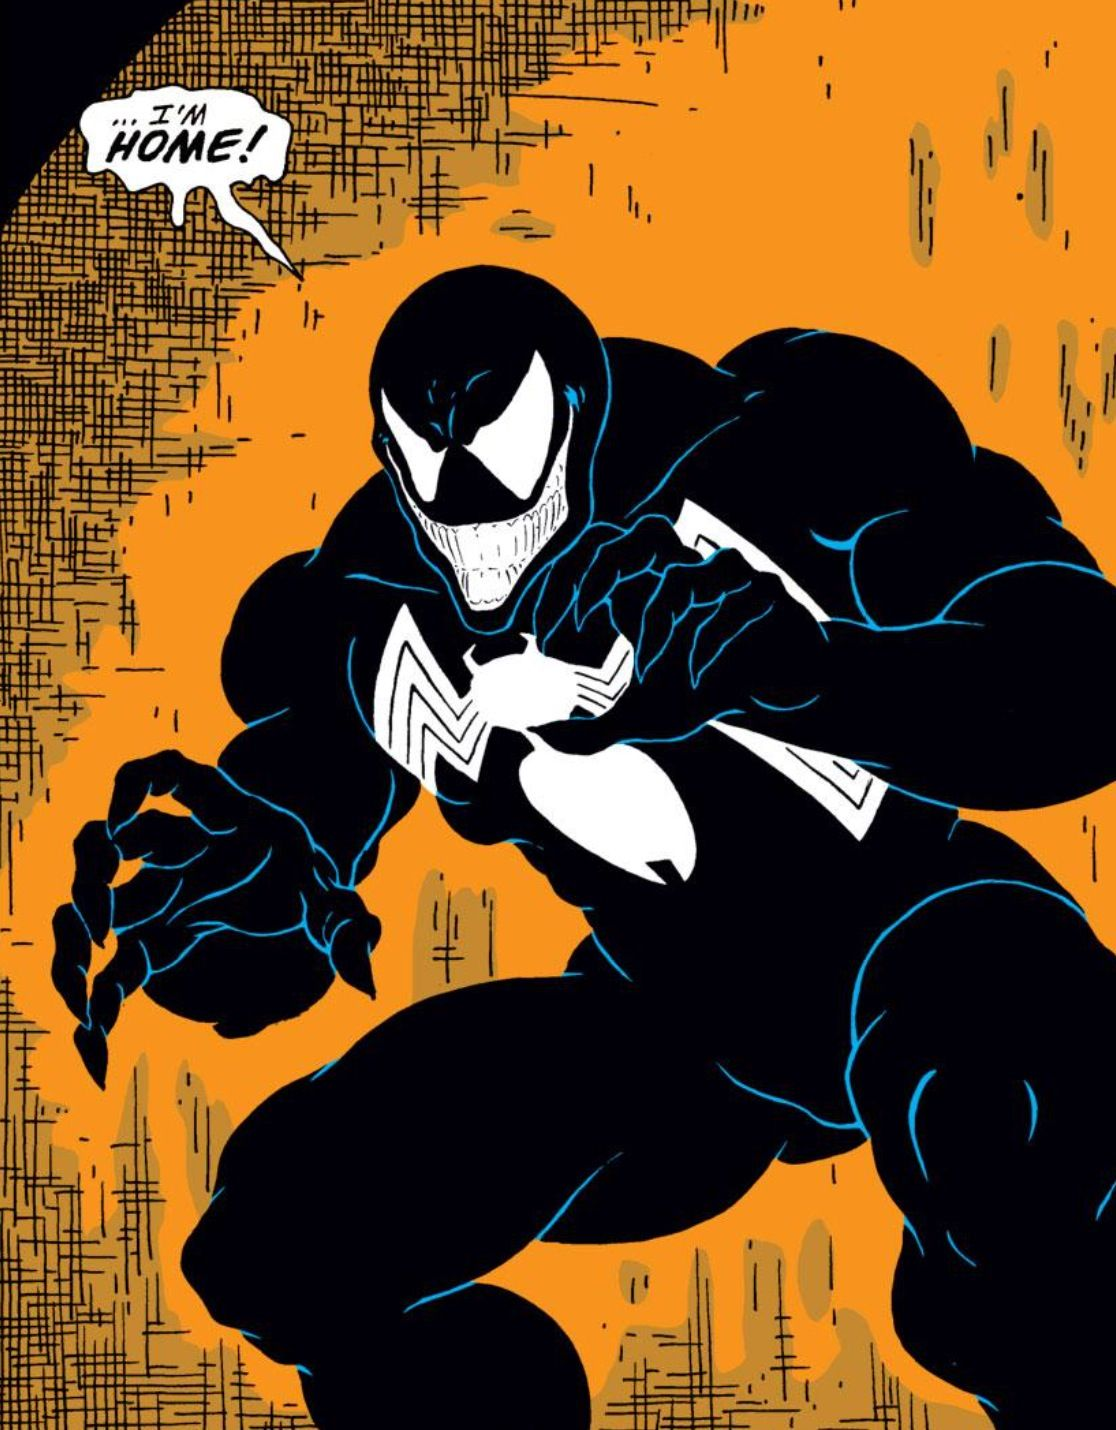 Why Isn't Venom in the Marvel Cinematic Universe but Spider